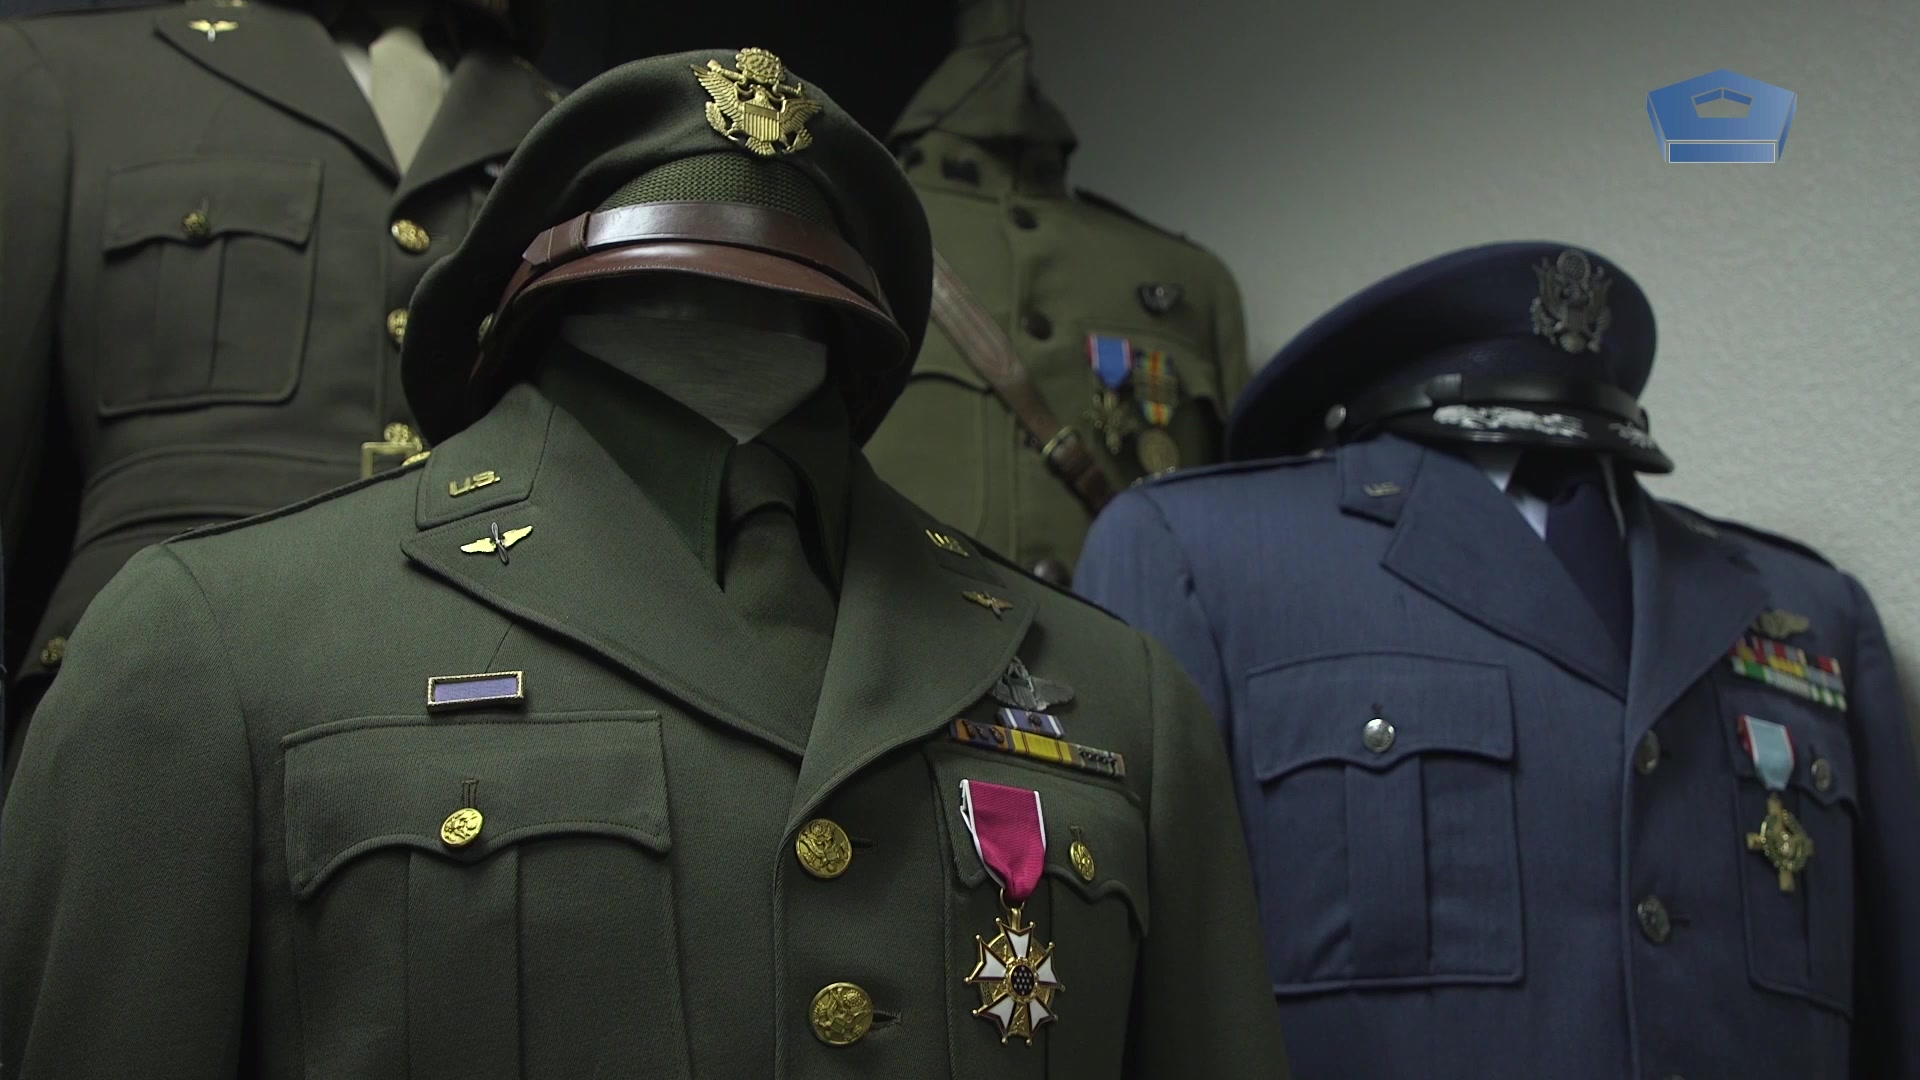 Col. Kyle Clement wears the Air Force uniform, but he's got a not-so-secret stash of uniforms he's been collecting for years. Some date all the way back to the first World War.